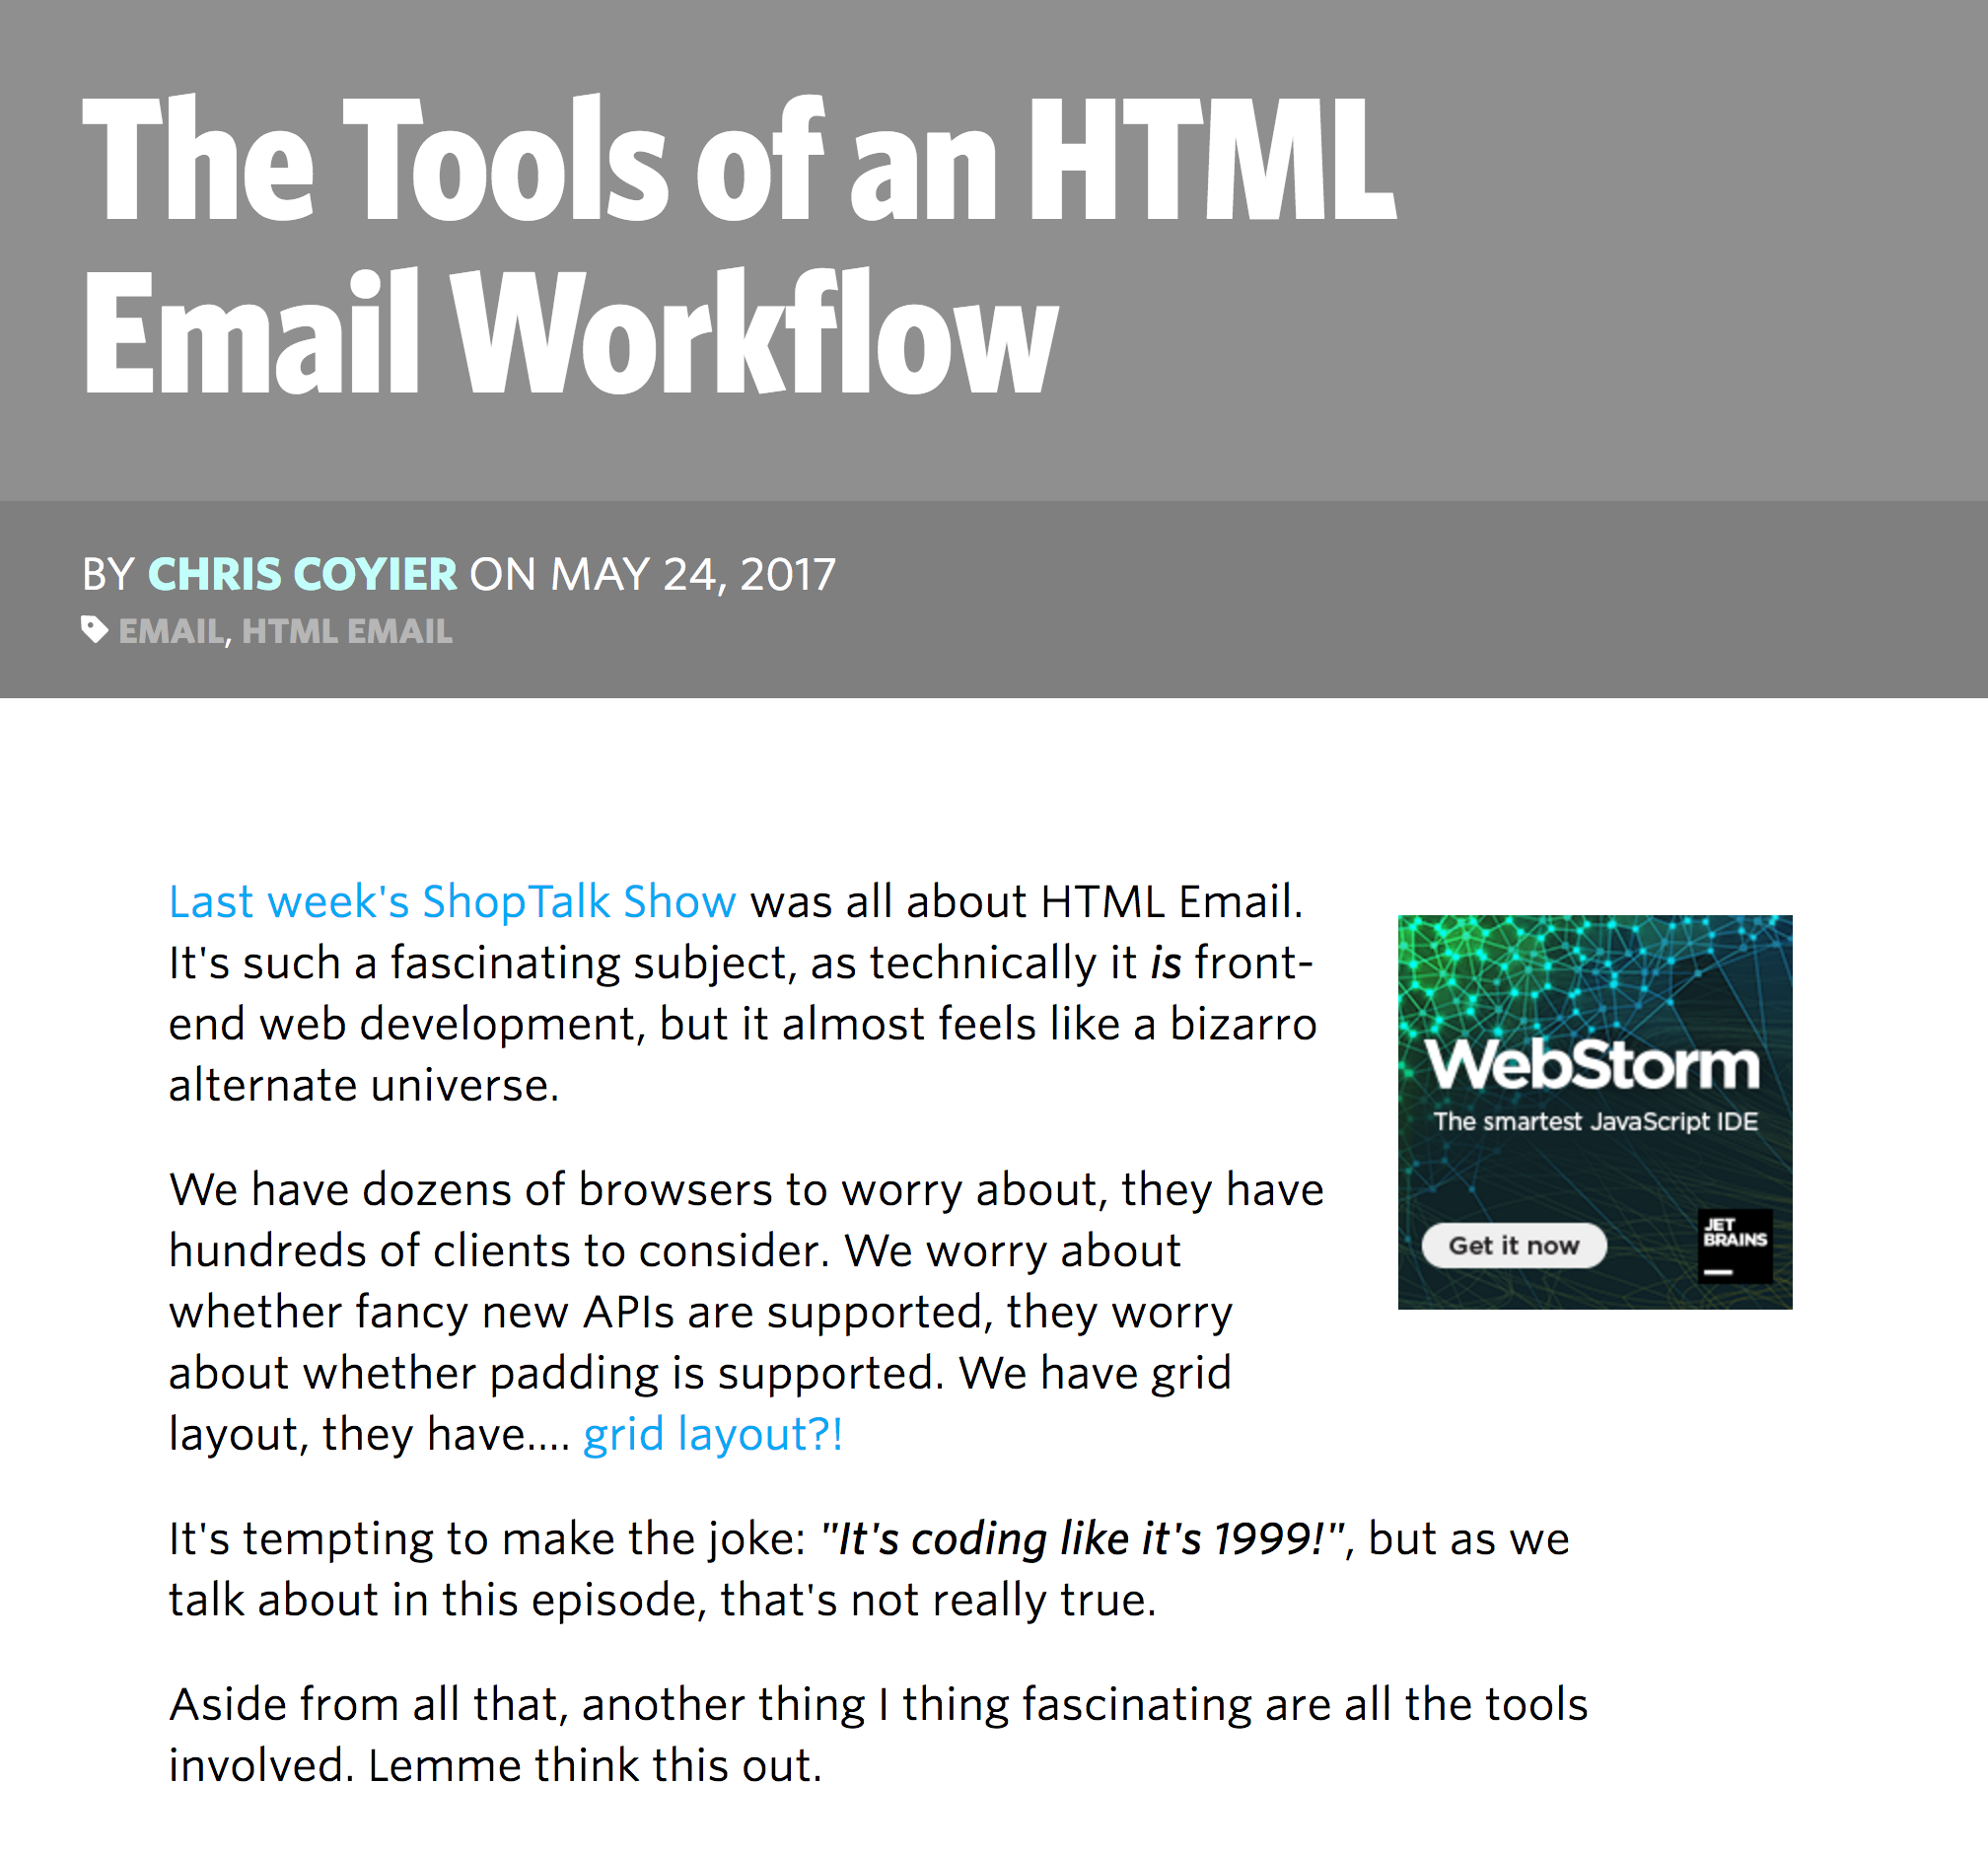 CSS Tricks: The Tools of an HTML EMail Workflow | Email Design